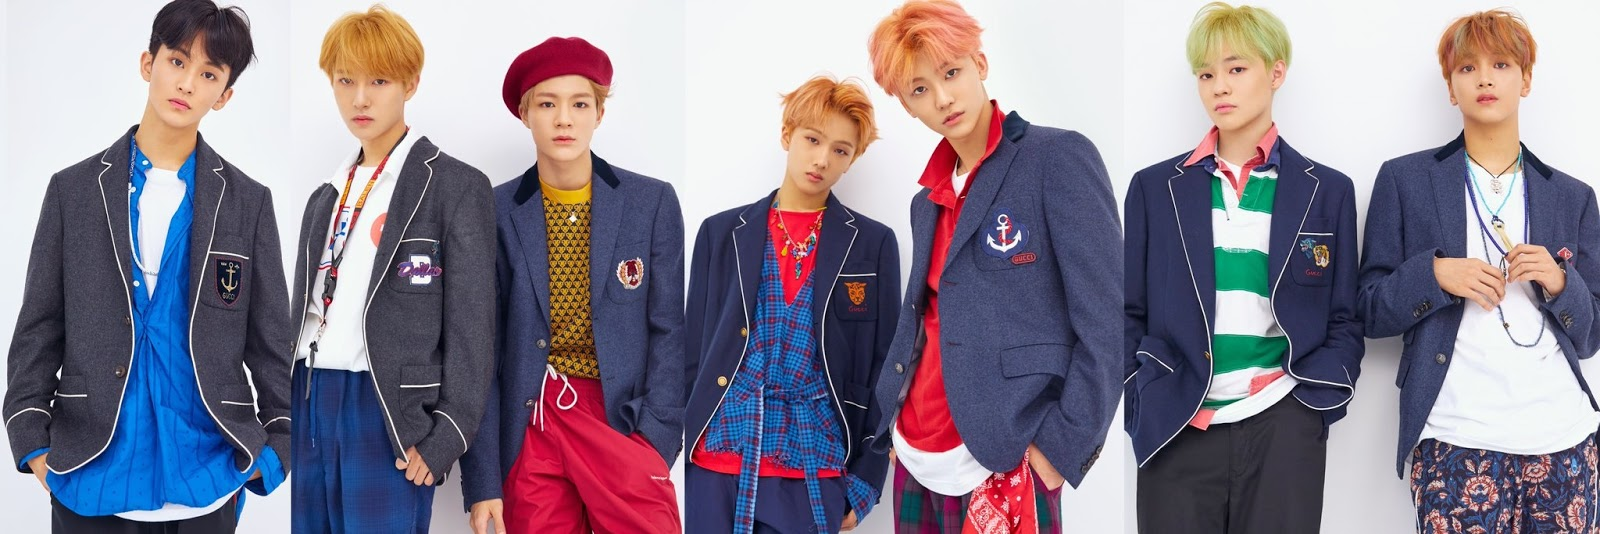 NCT Dream